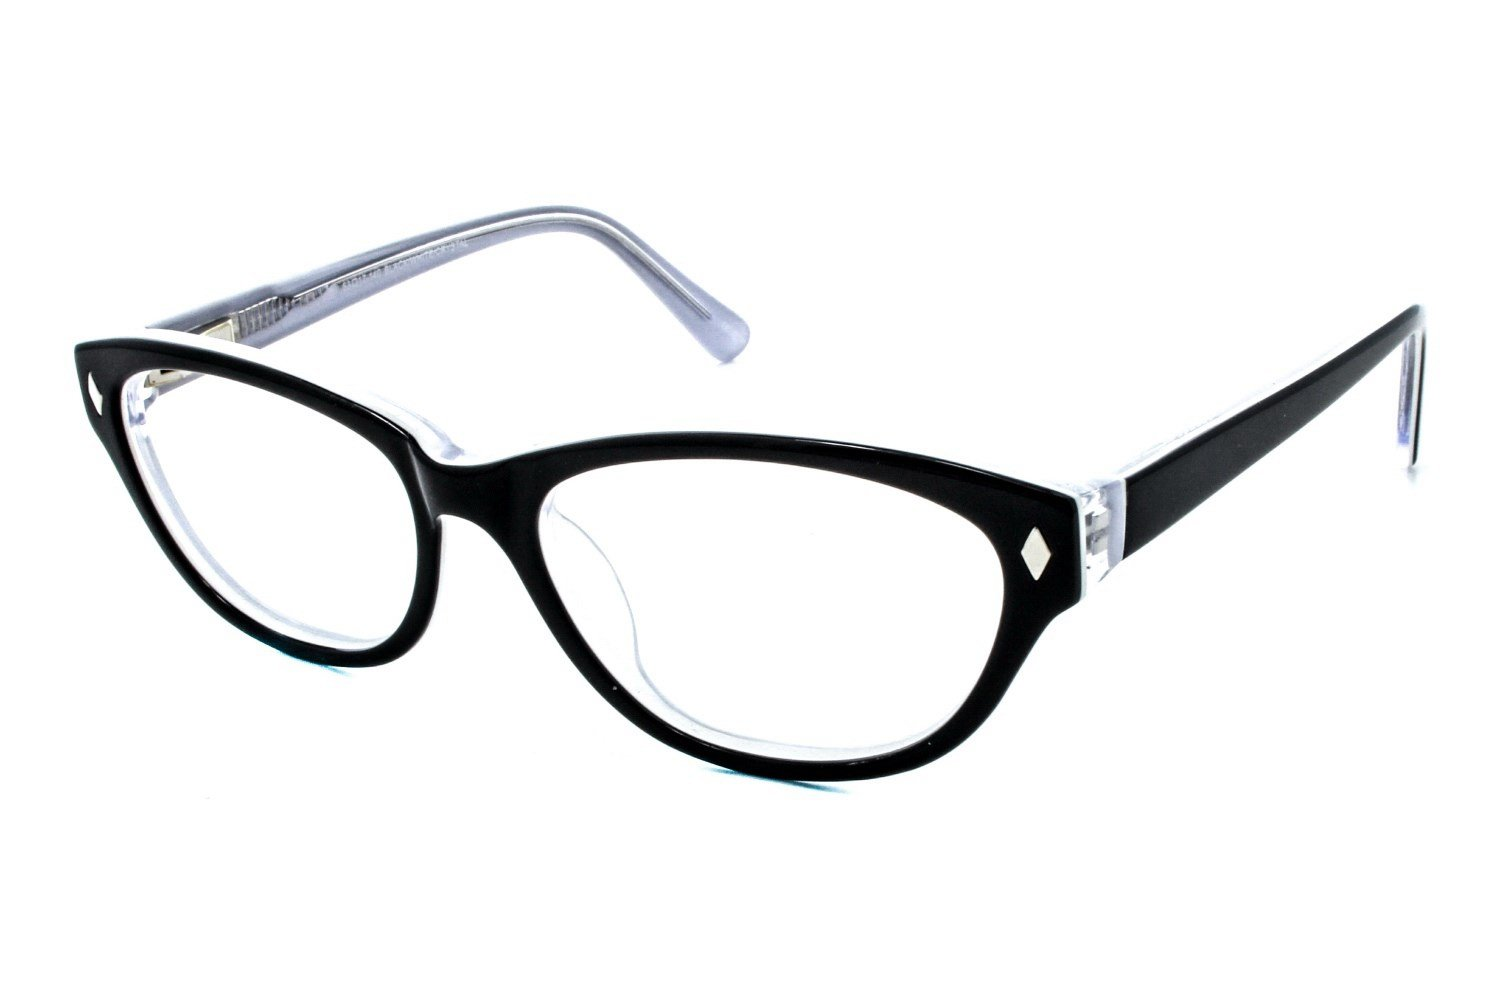 Lunettos Isabelle Prescription Eyeglasses Frames